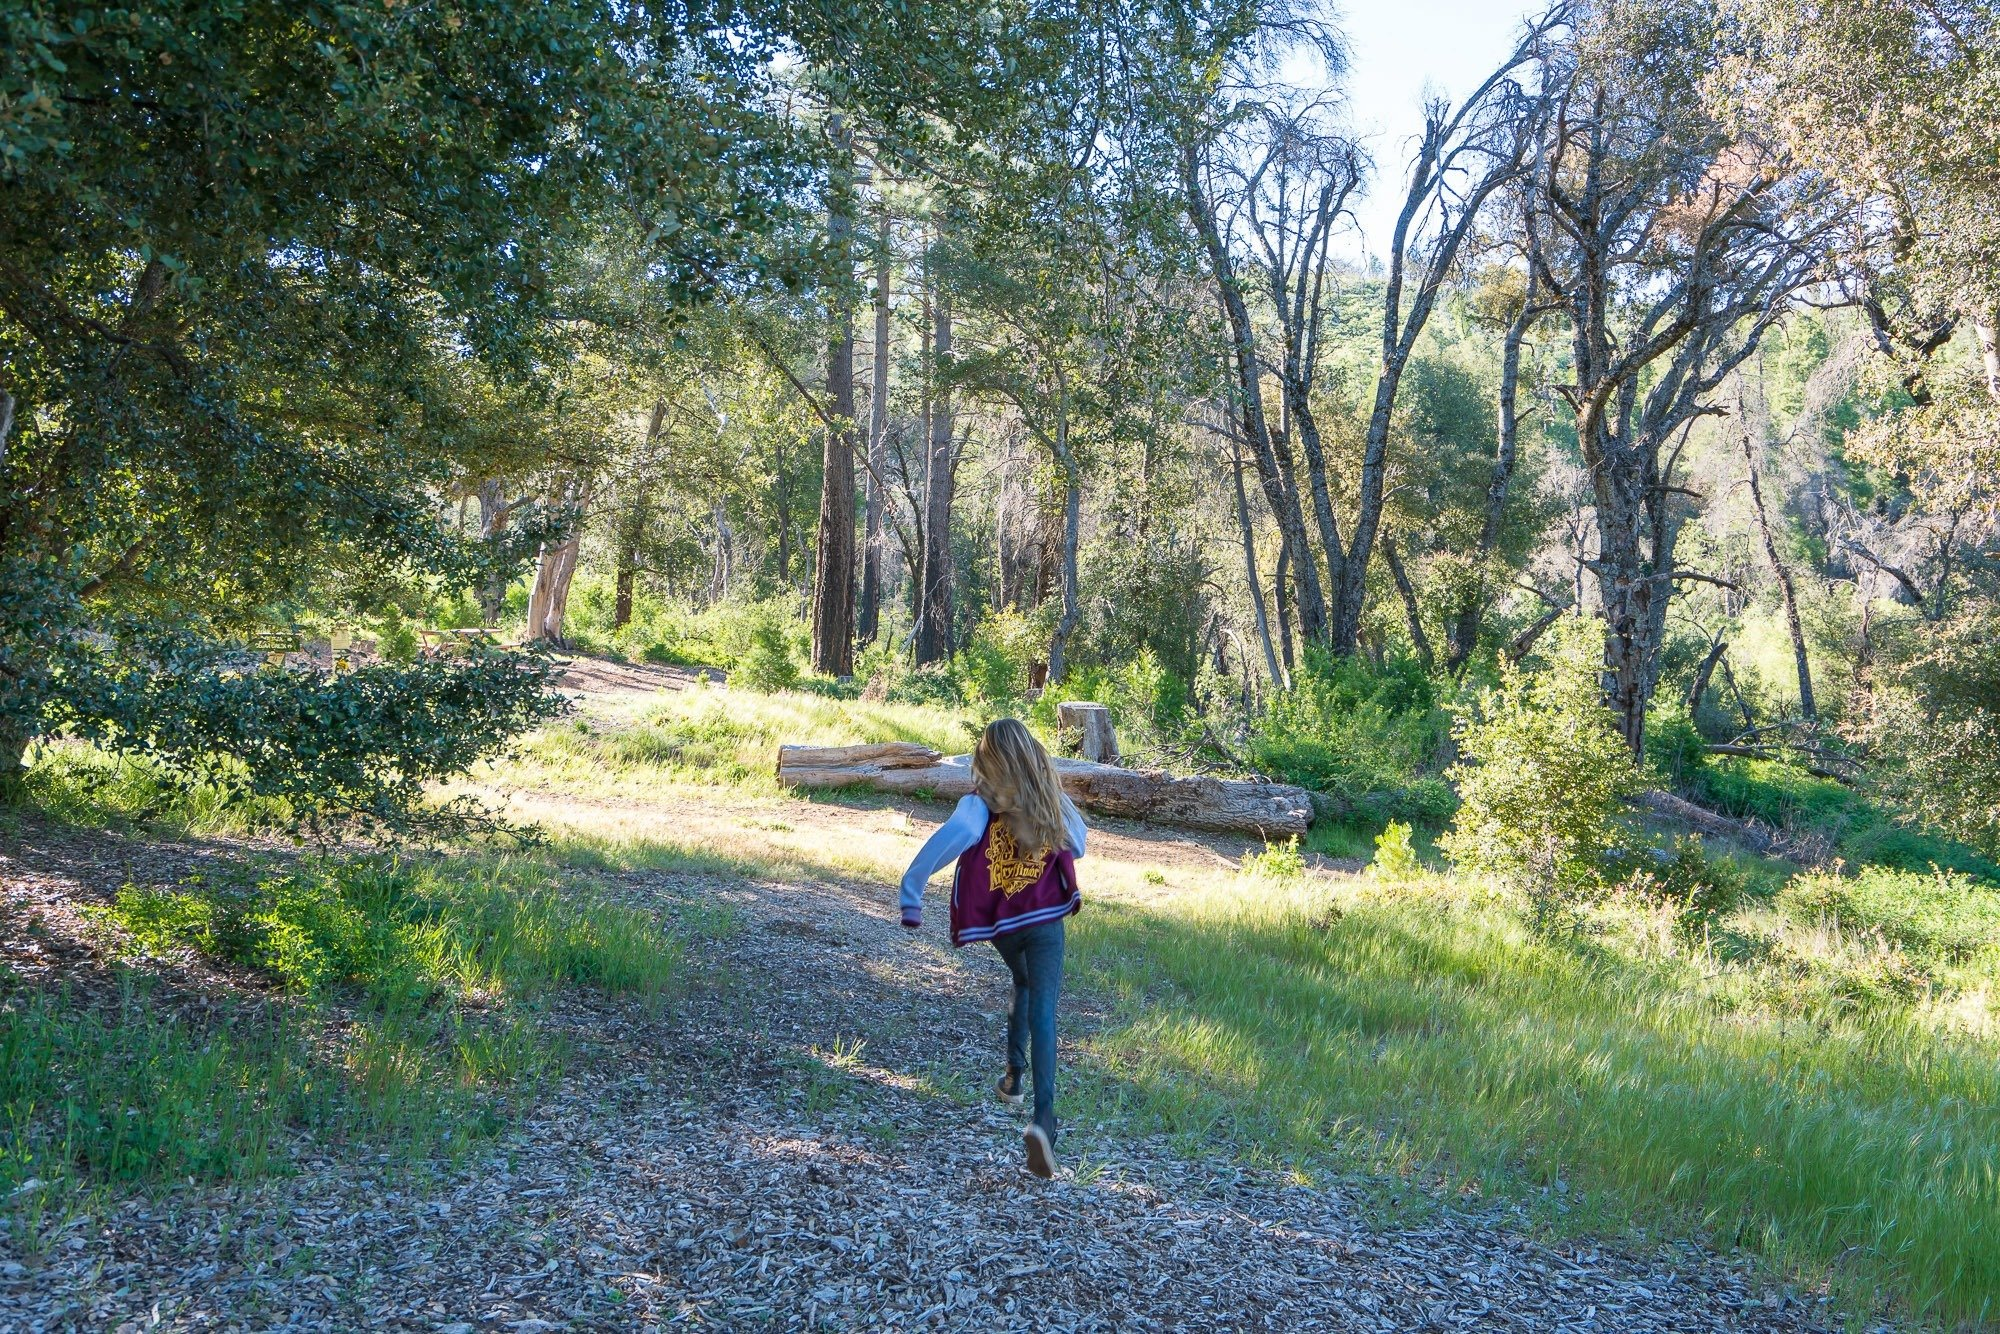 William Heise State Park campground in Julian, California